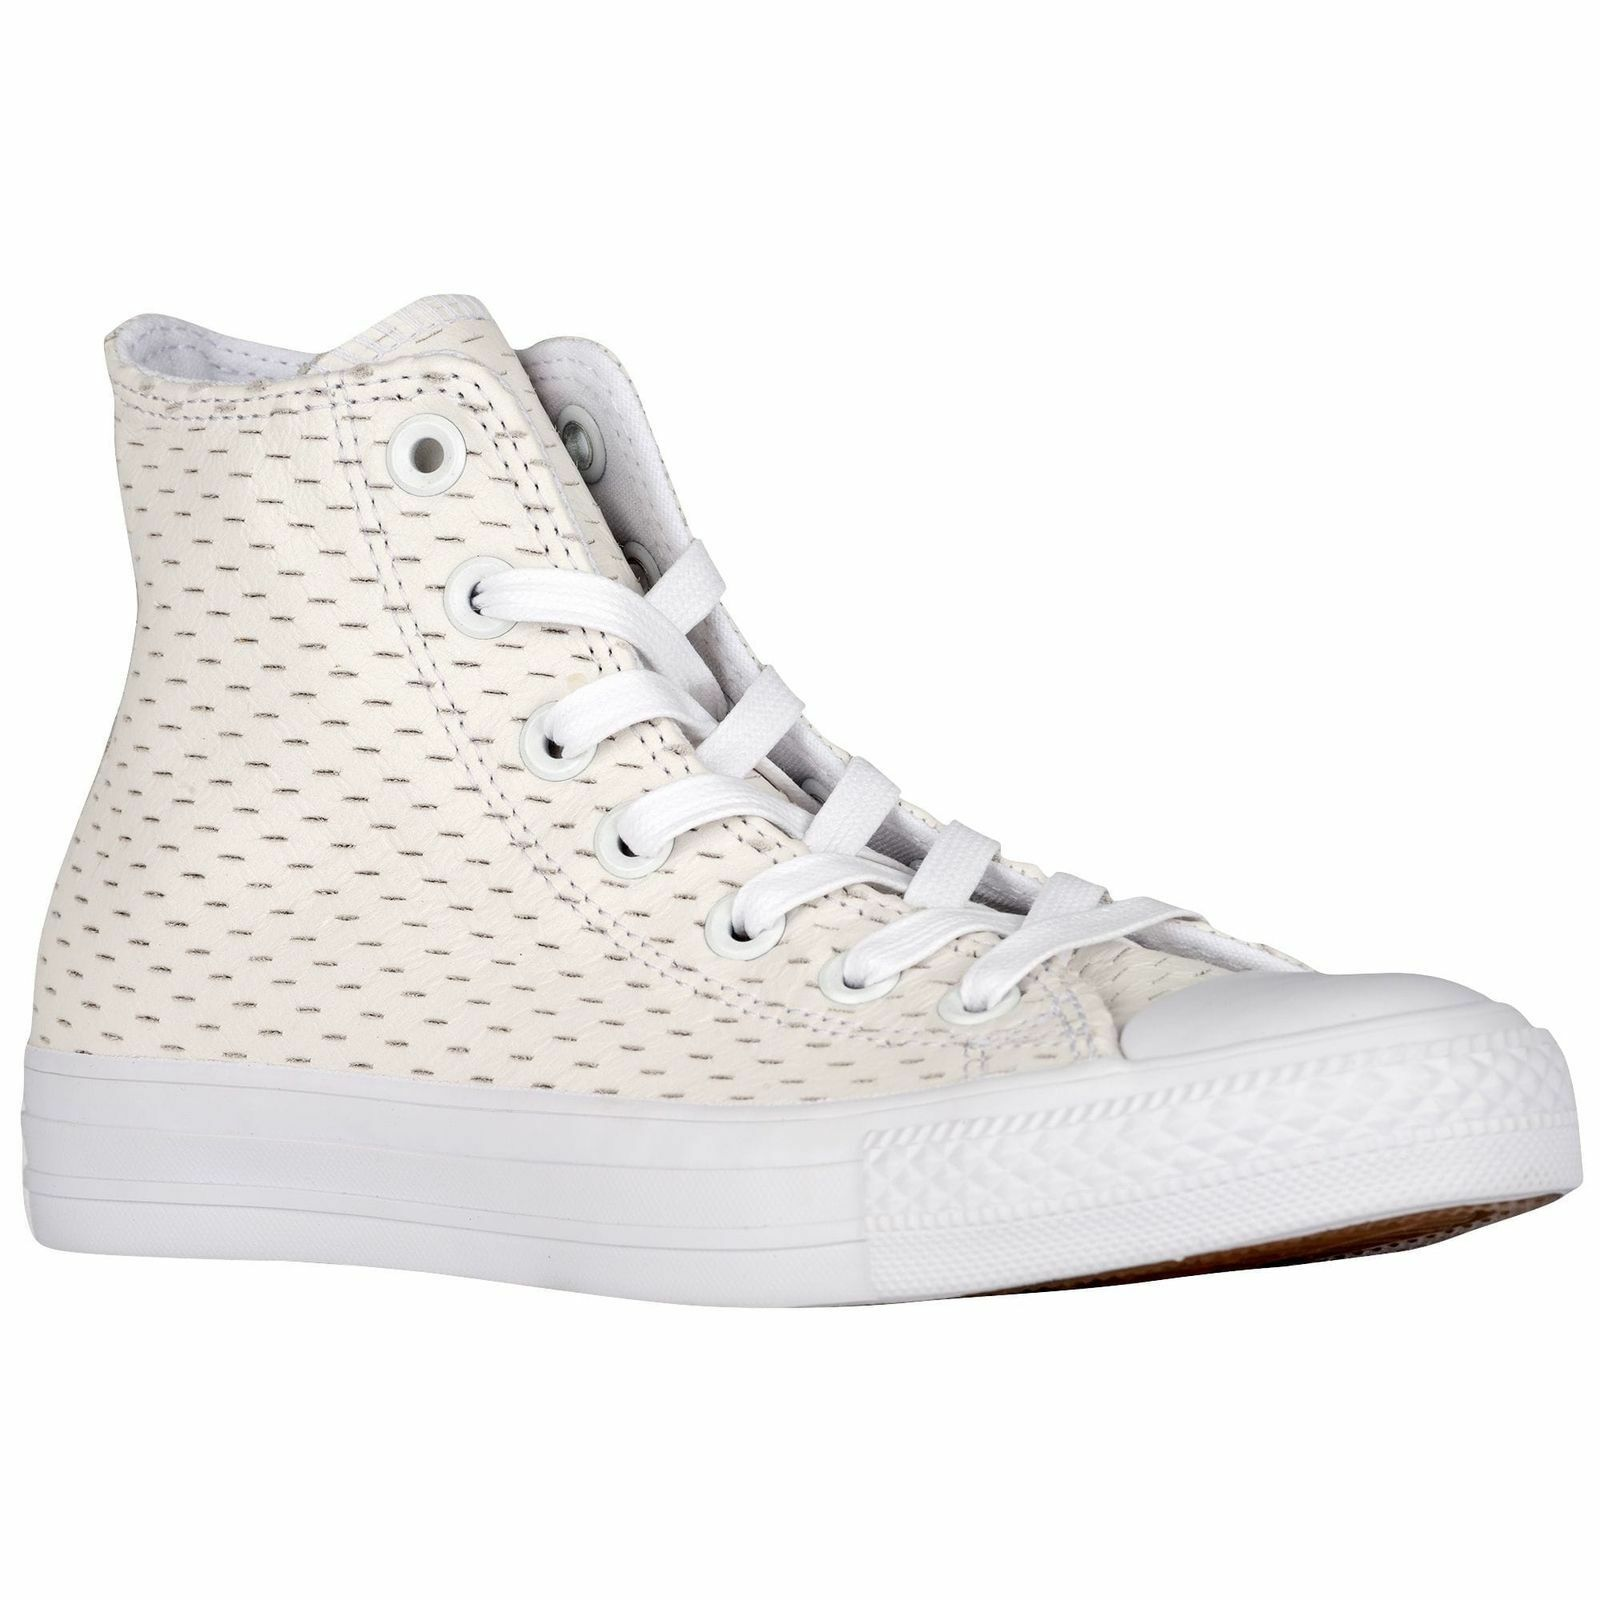 Converse All Star Pelle High White Out Pack White/Gold 153115C Uomo Shoe